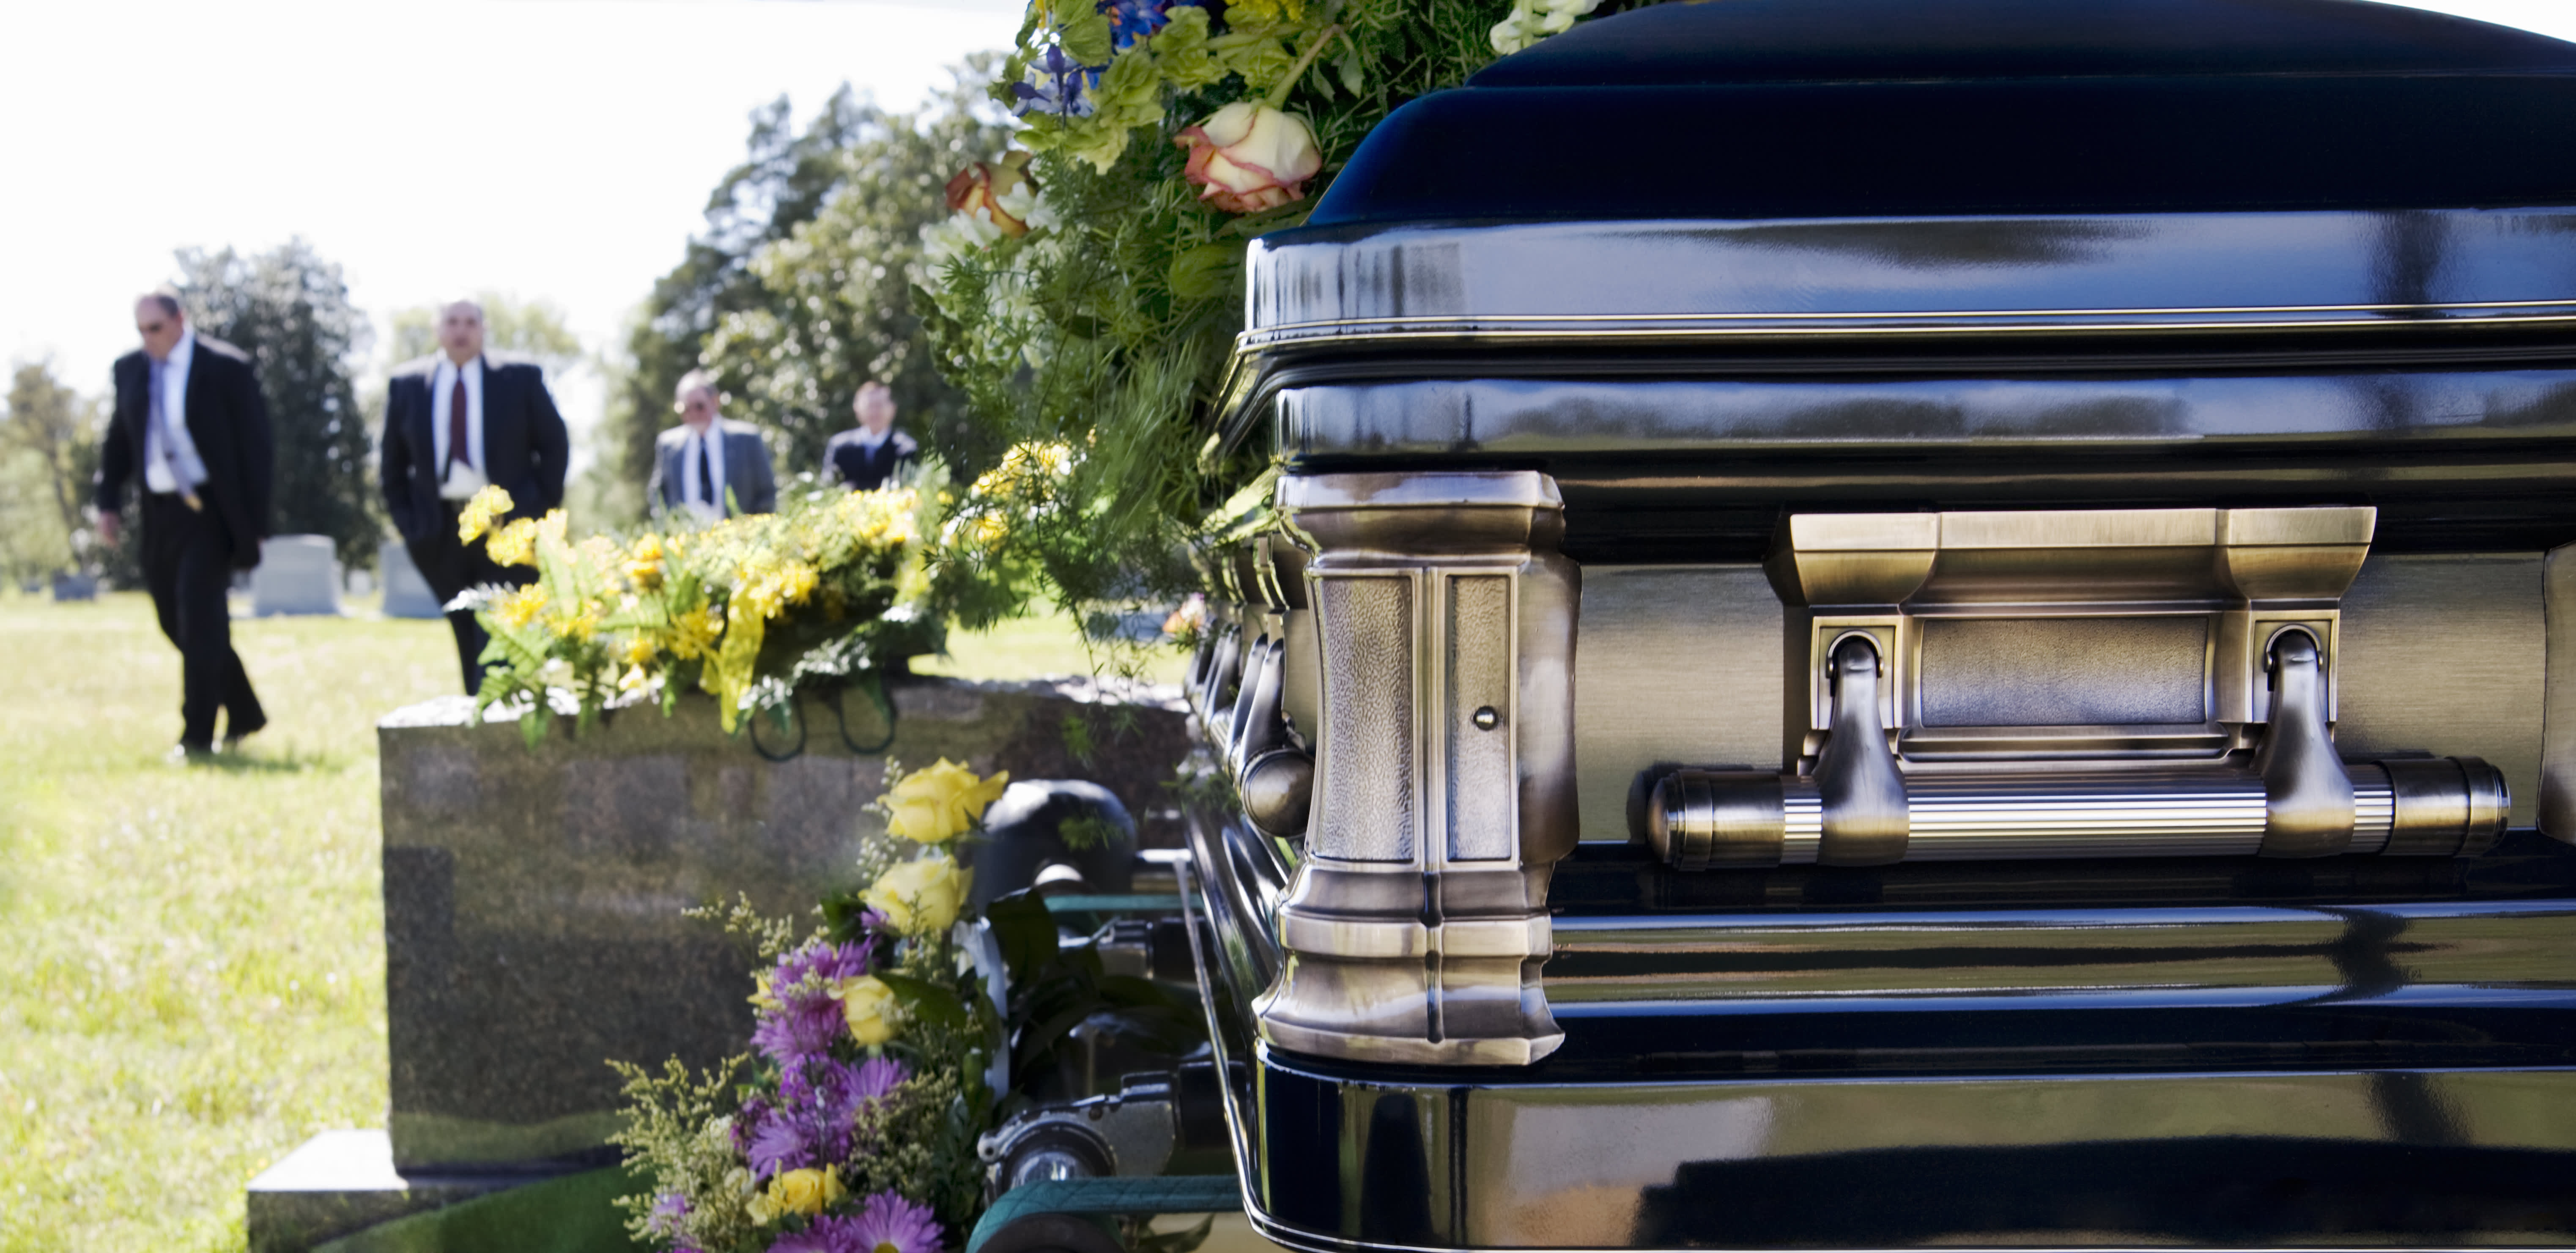 Criminals target Covid relief program that pays $9,000 in victims' funeral costs